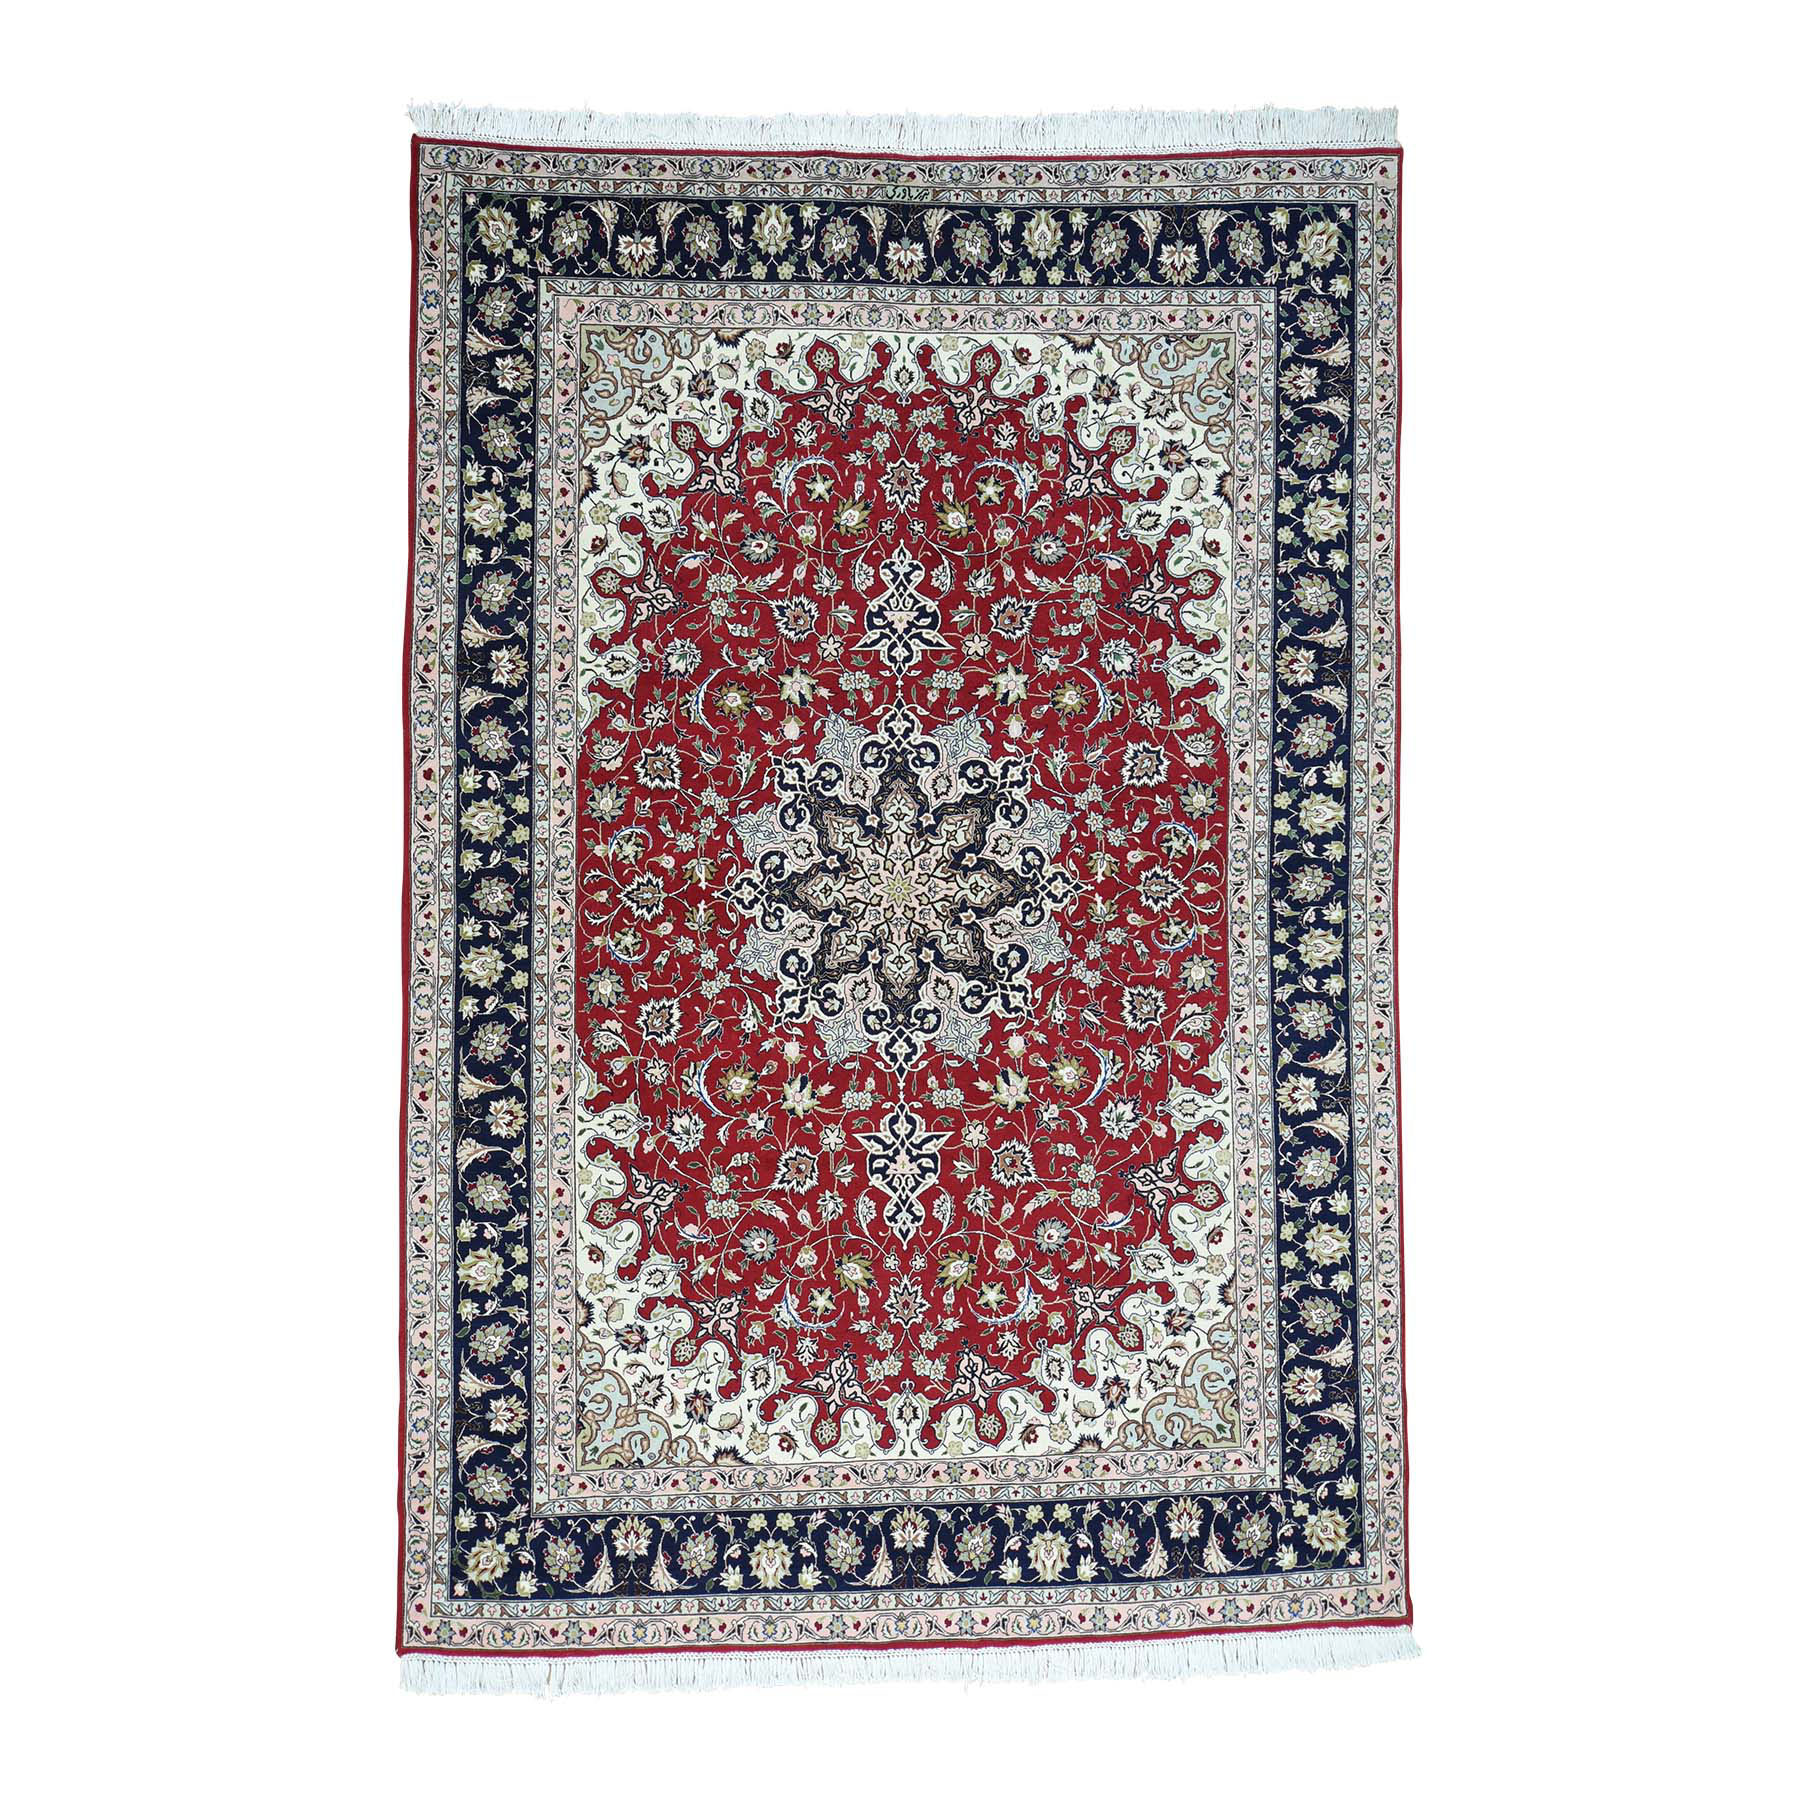 Pirniakan Collection Hand Knotted Red Rug No: 0163914